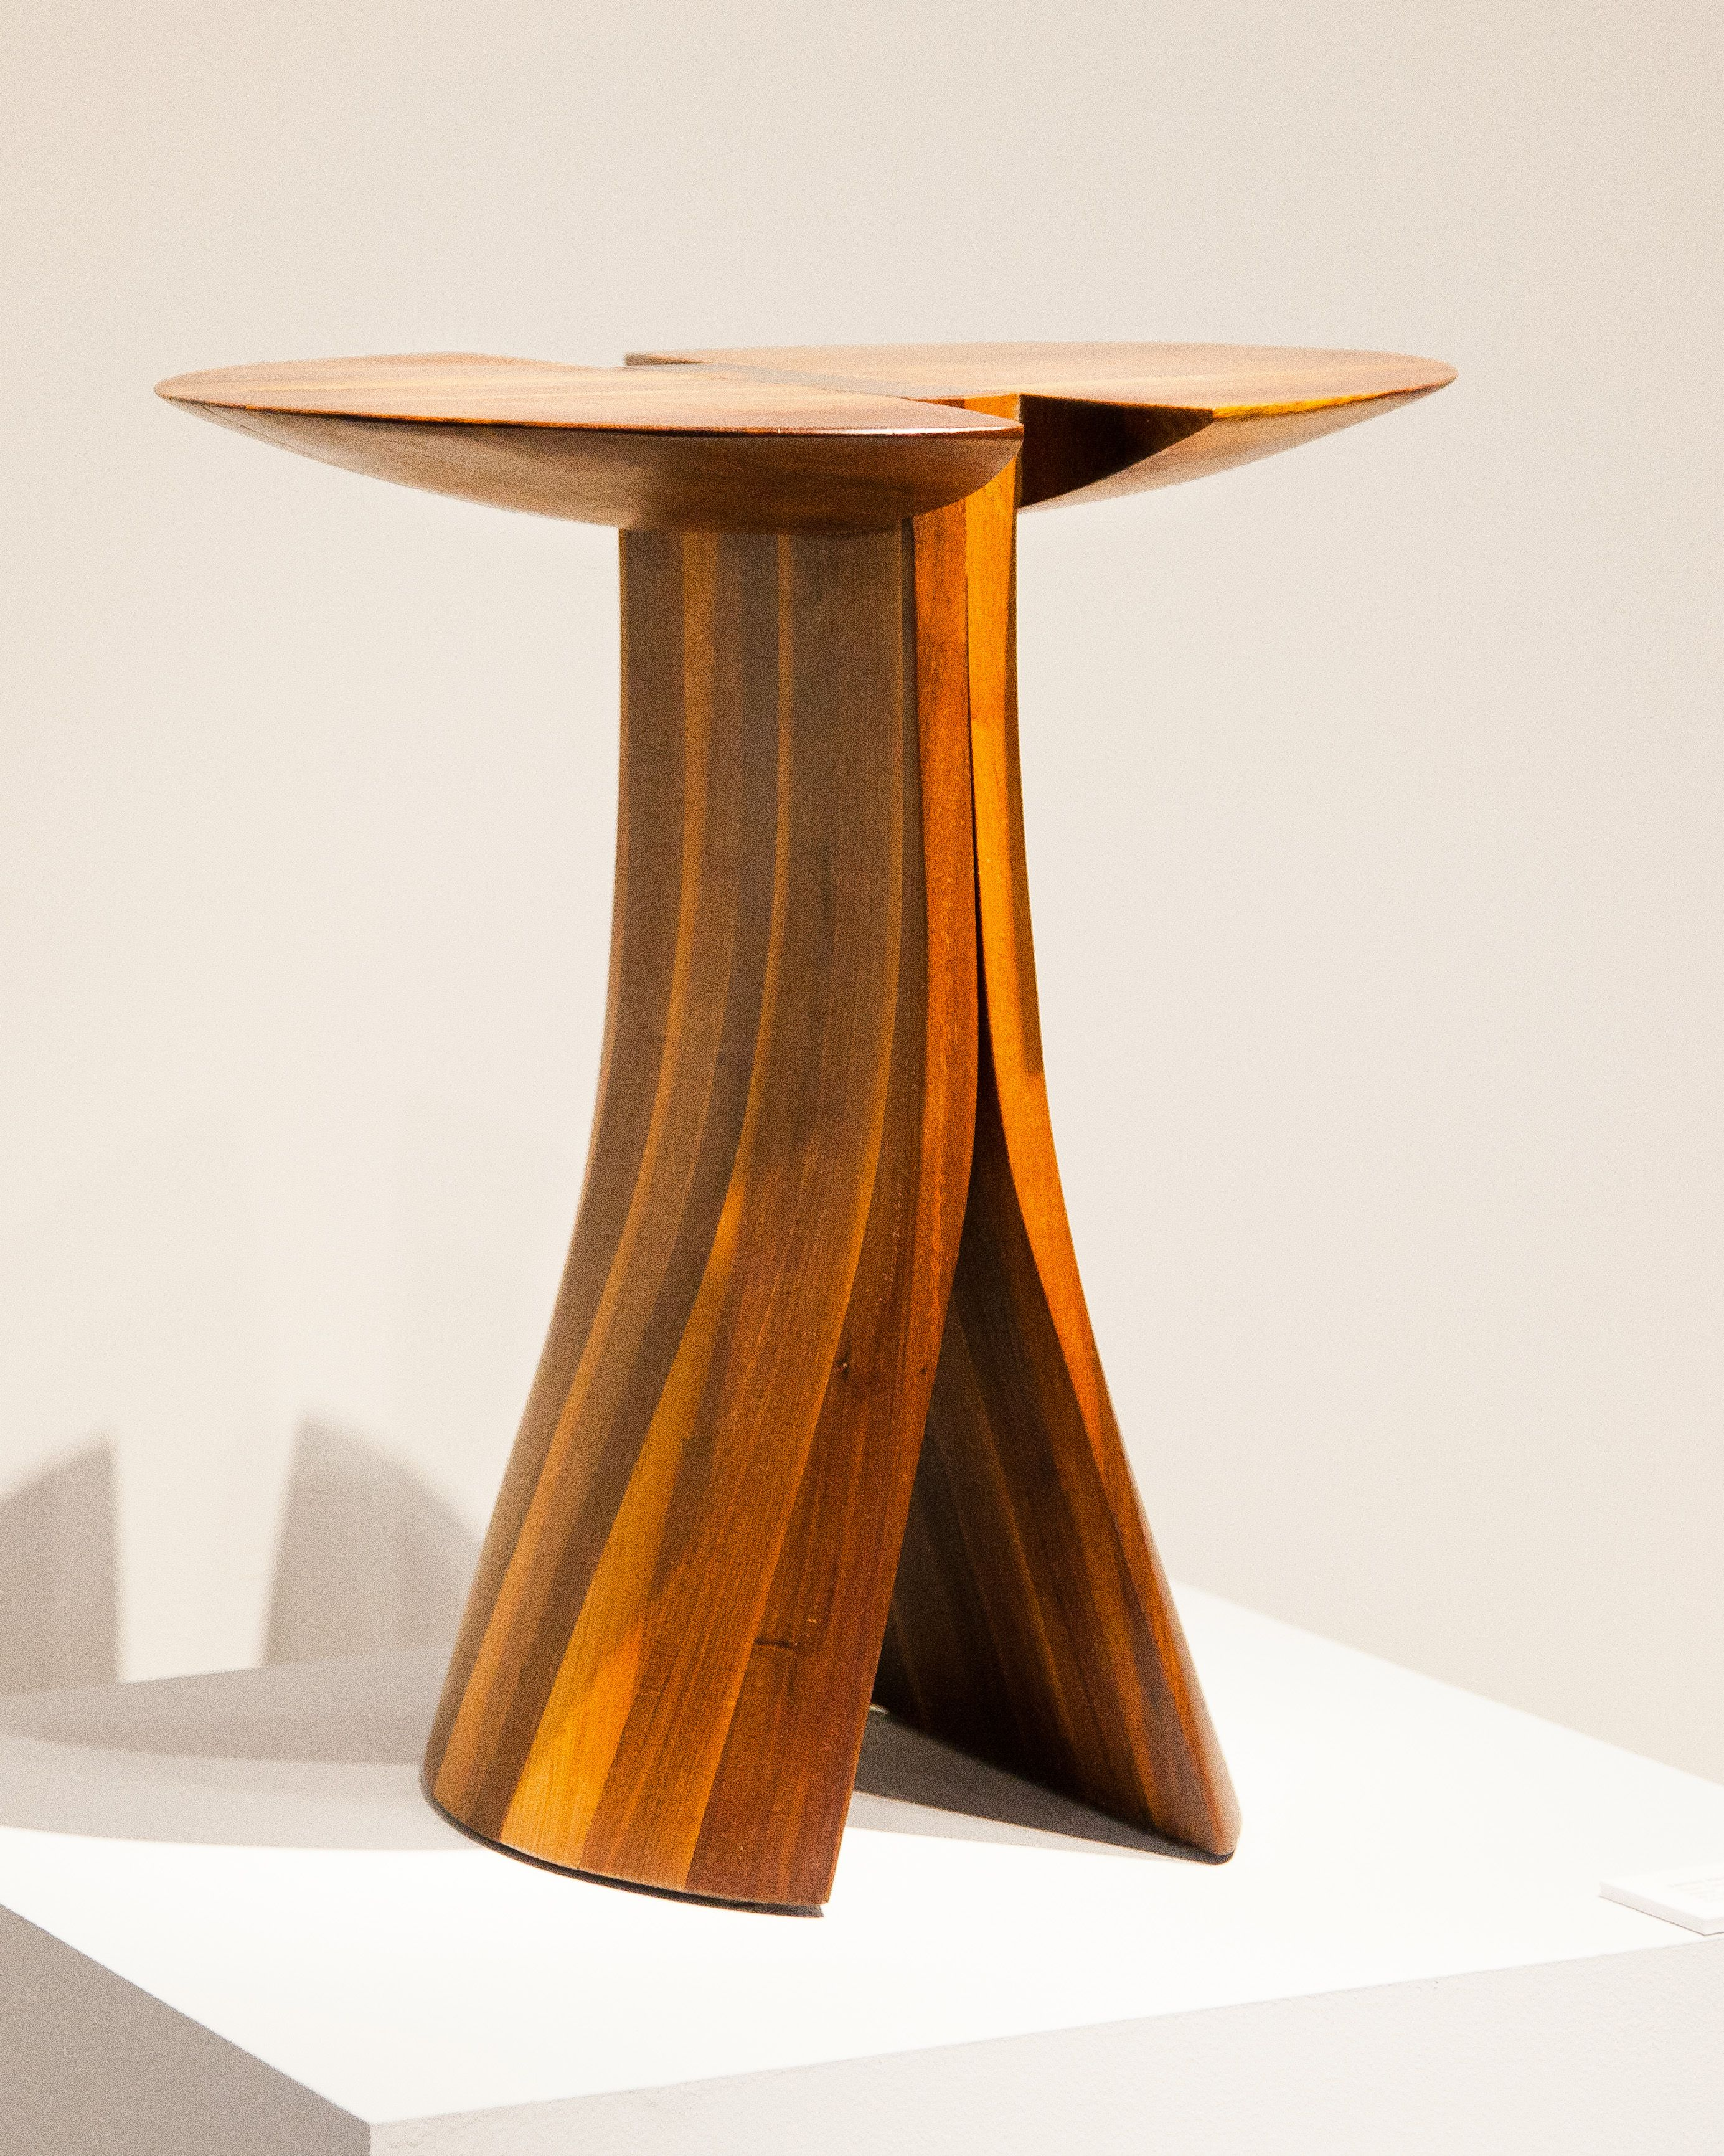 James henkle side table with bookshelf walnut and zebrawood